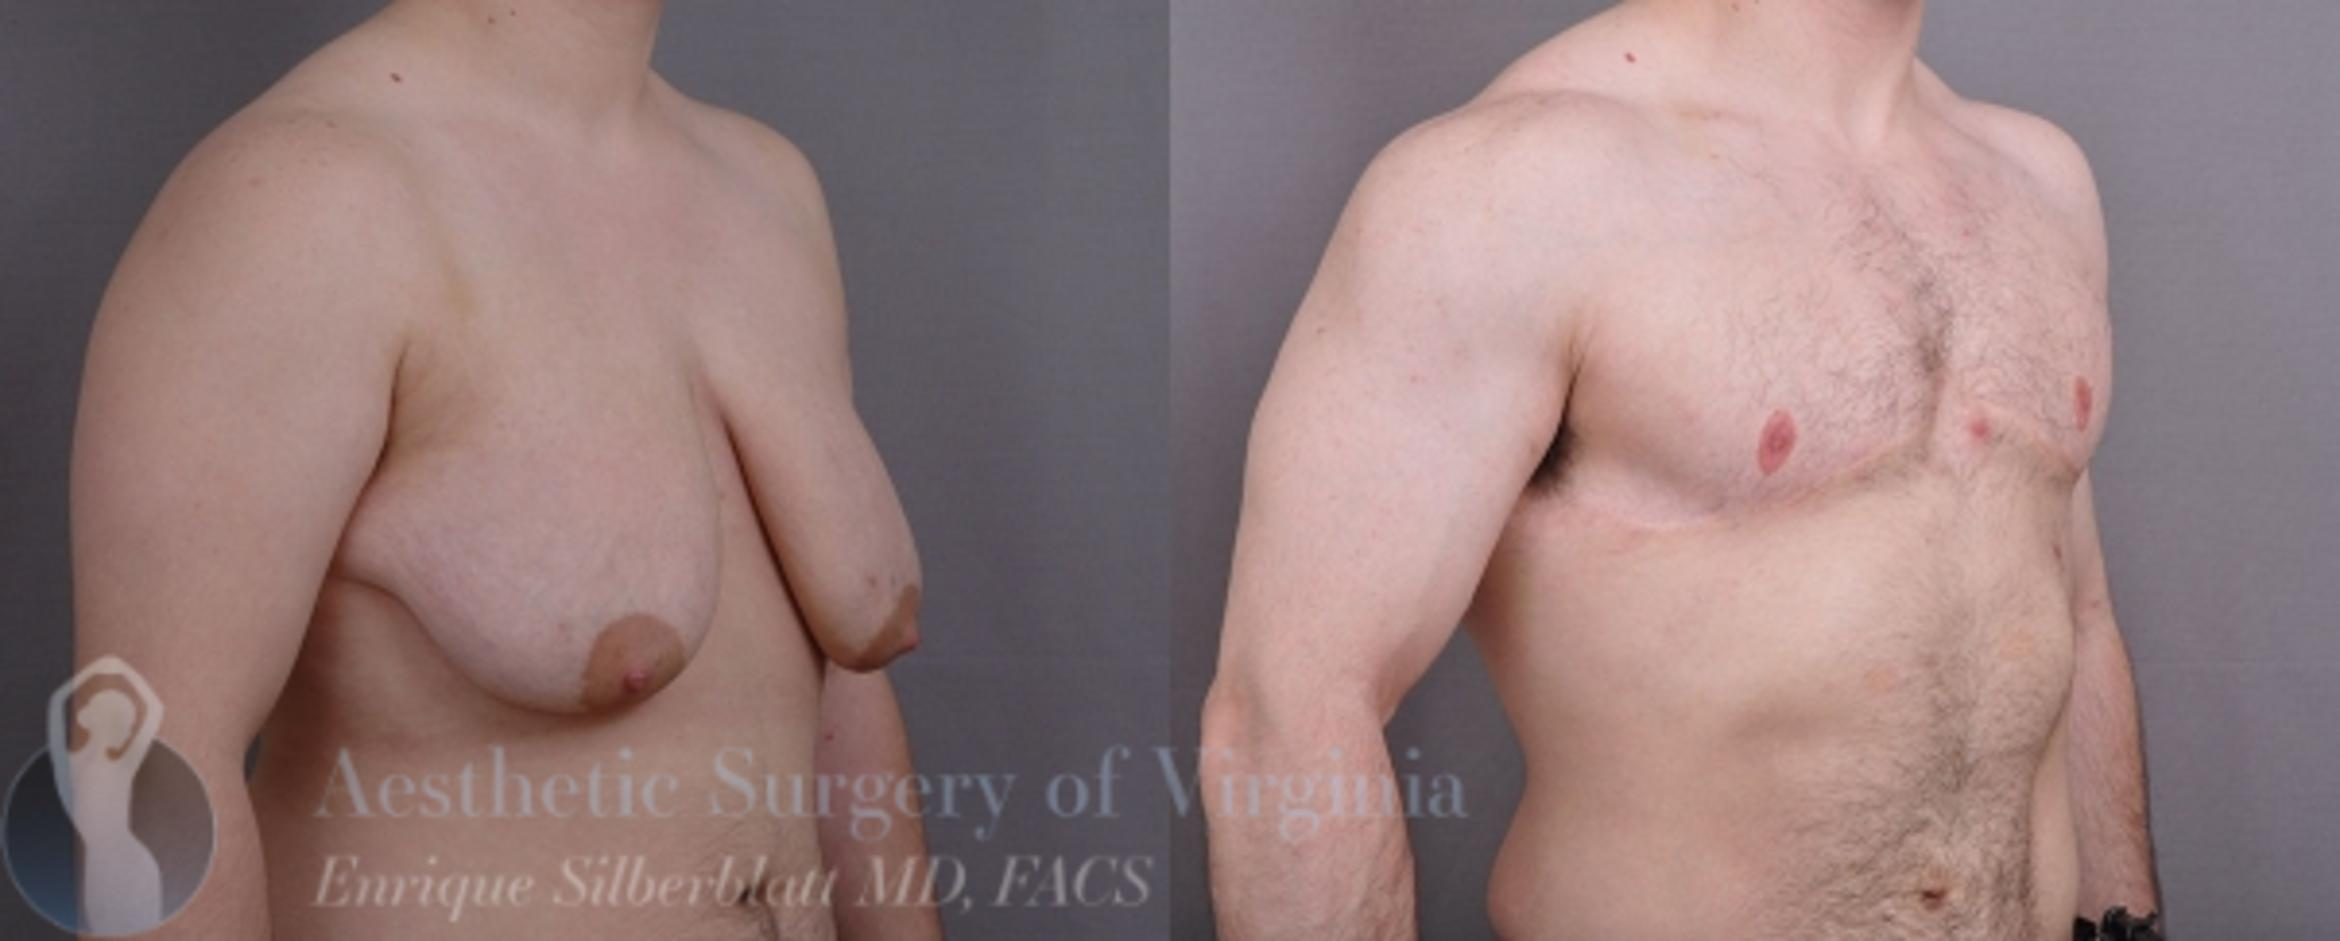 Female to Male Breast Surgery Case 57 Before & After View #3 | Roanoke, VA | Aesthetic Surgery of Virginia: Enrique Silberblatt, MD